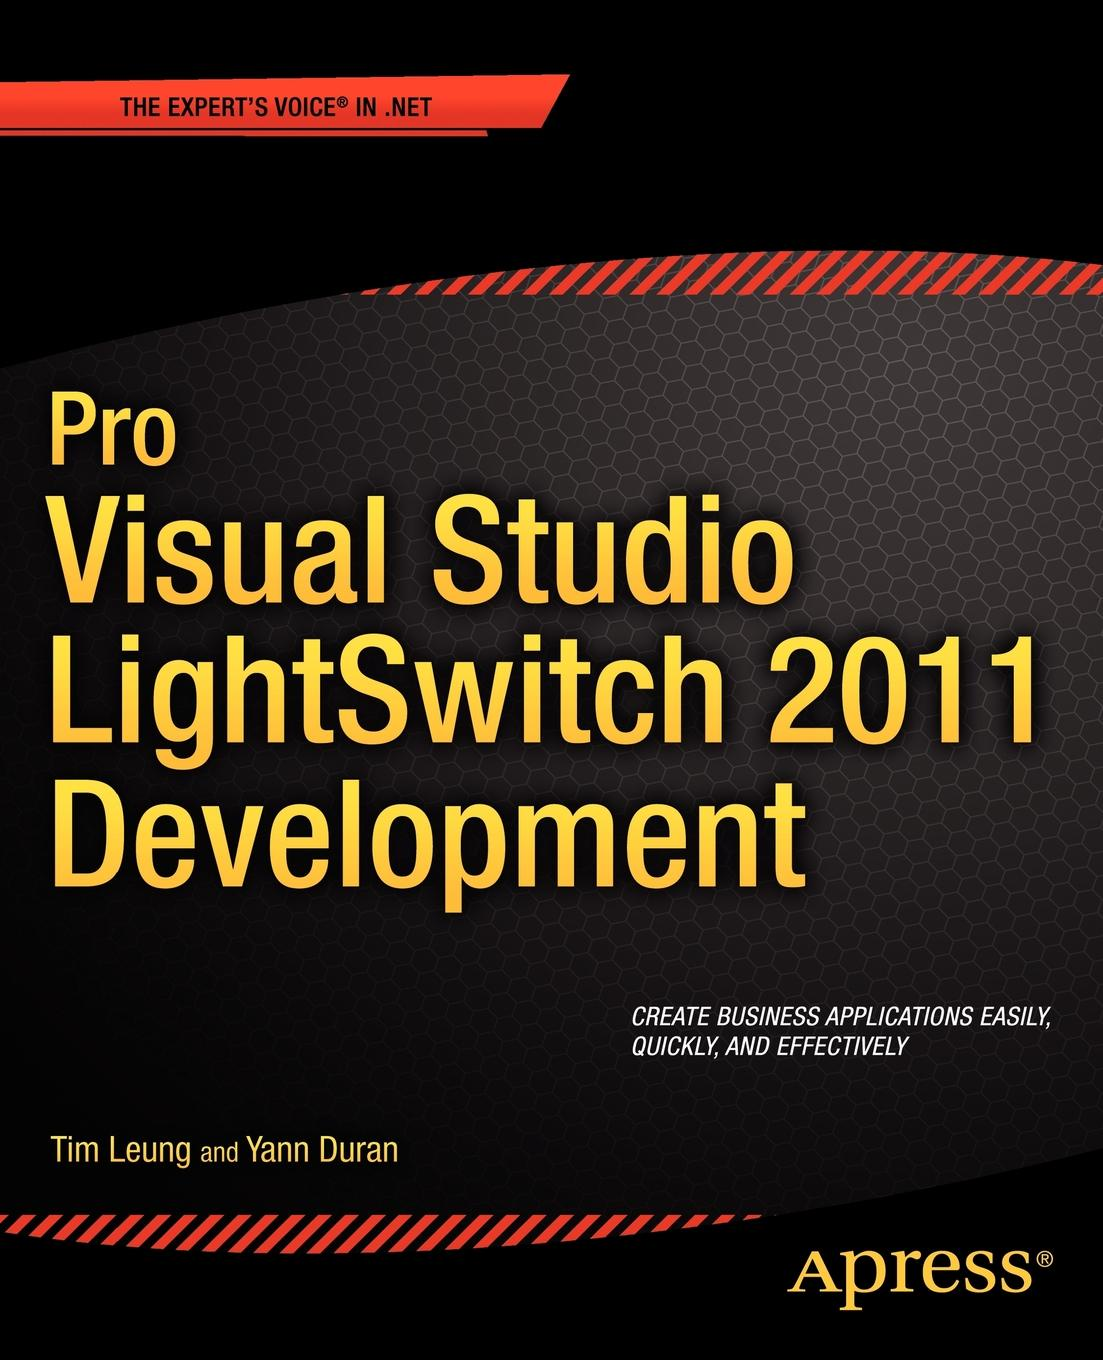 Timothy Leung, Tim Leung, Yann Duran Pro Visual Studio Lightswitch 2011 Development theodore leung w professional xml development with apache tools xerces xalan fop cocoon axis xindice